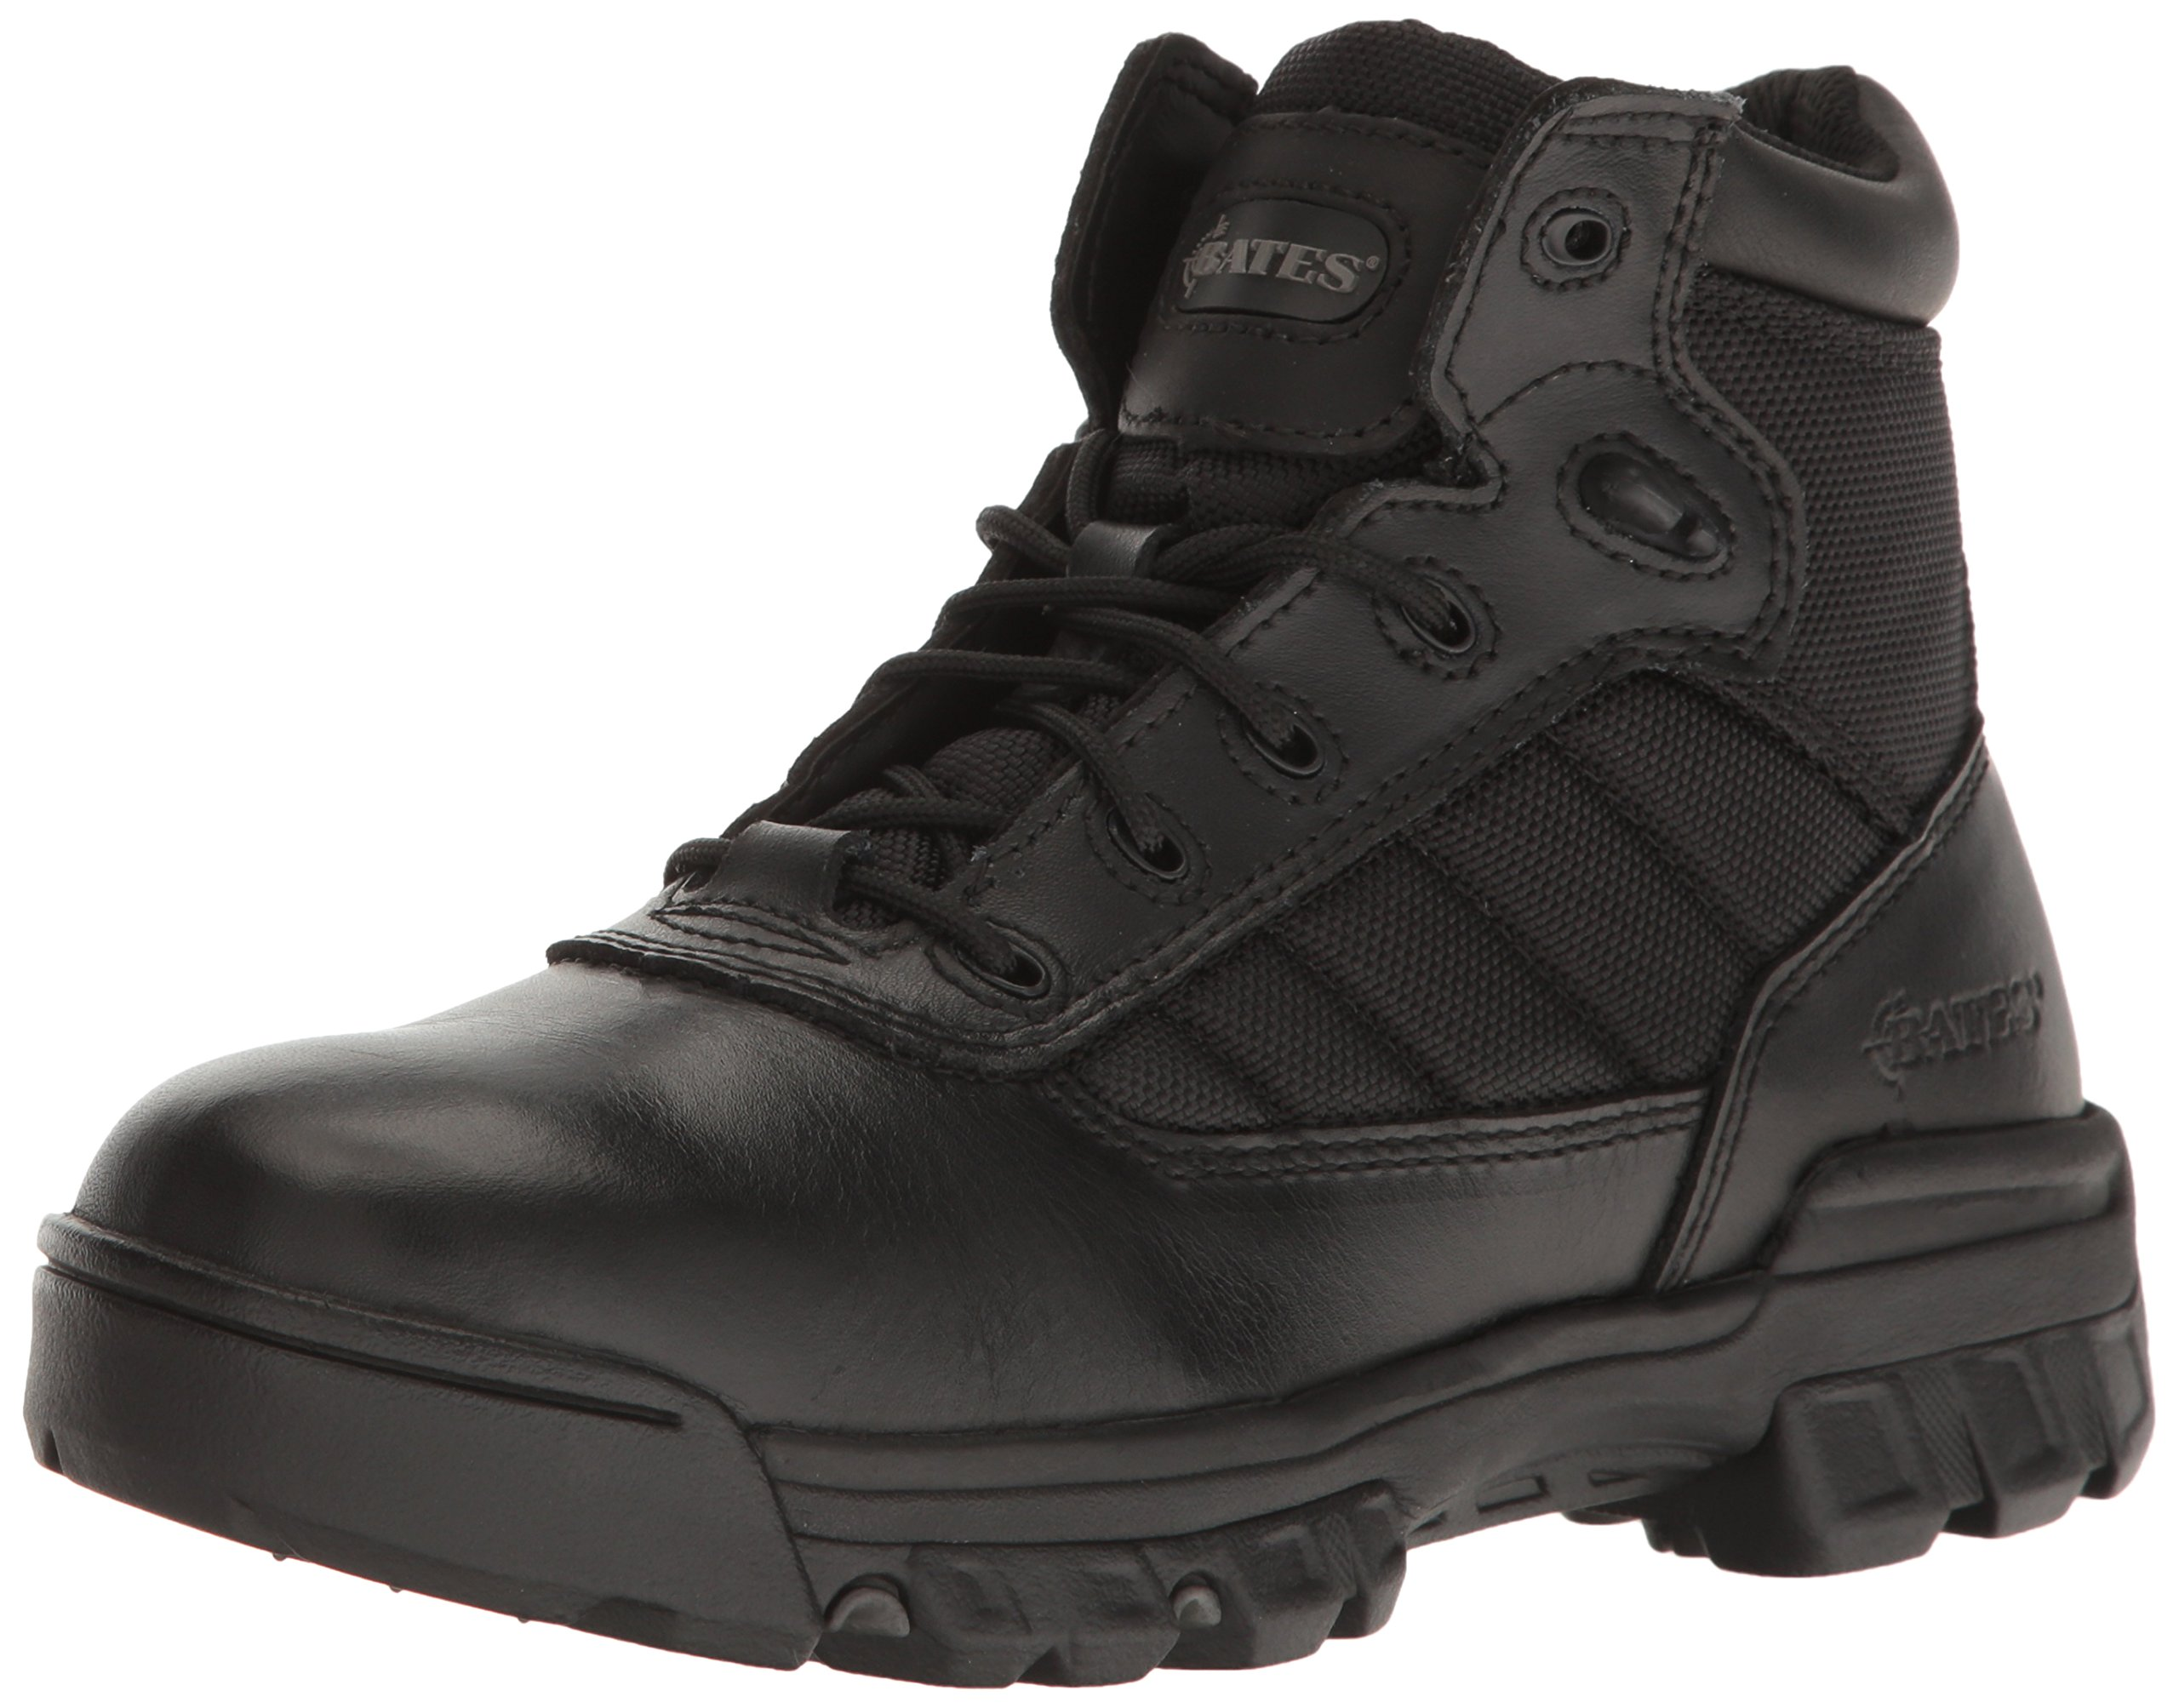 Bates Women's 5 Inches Enforcer Ultralit Sport Boot,Black,8 M US